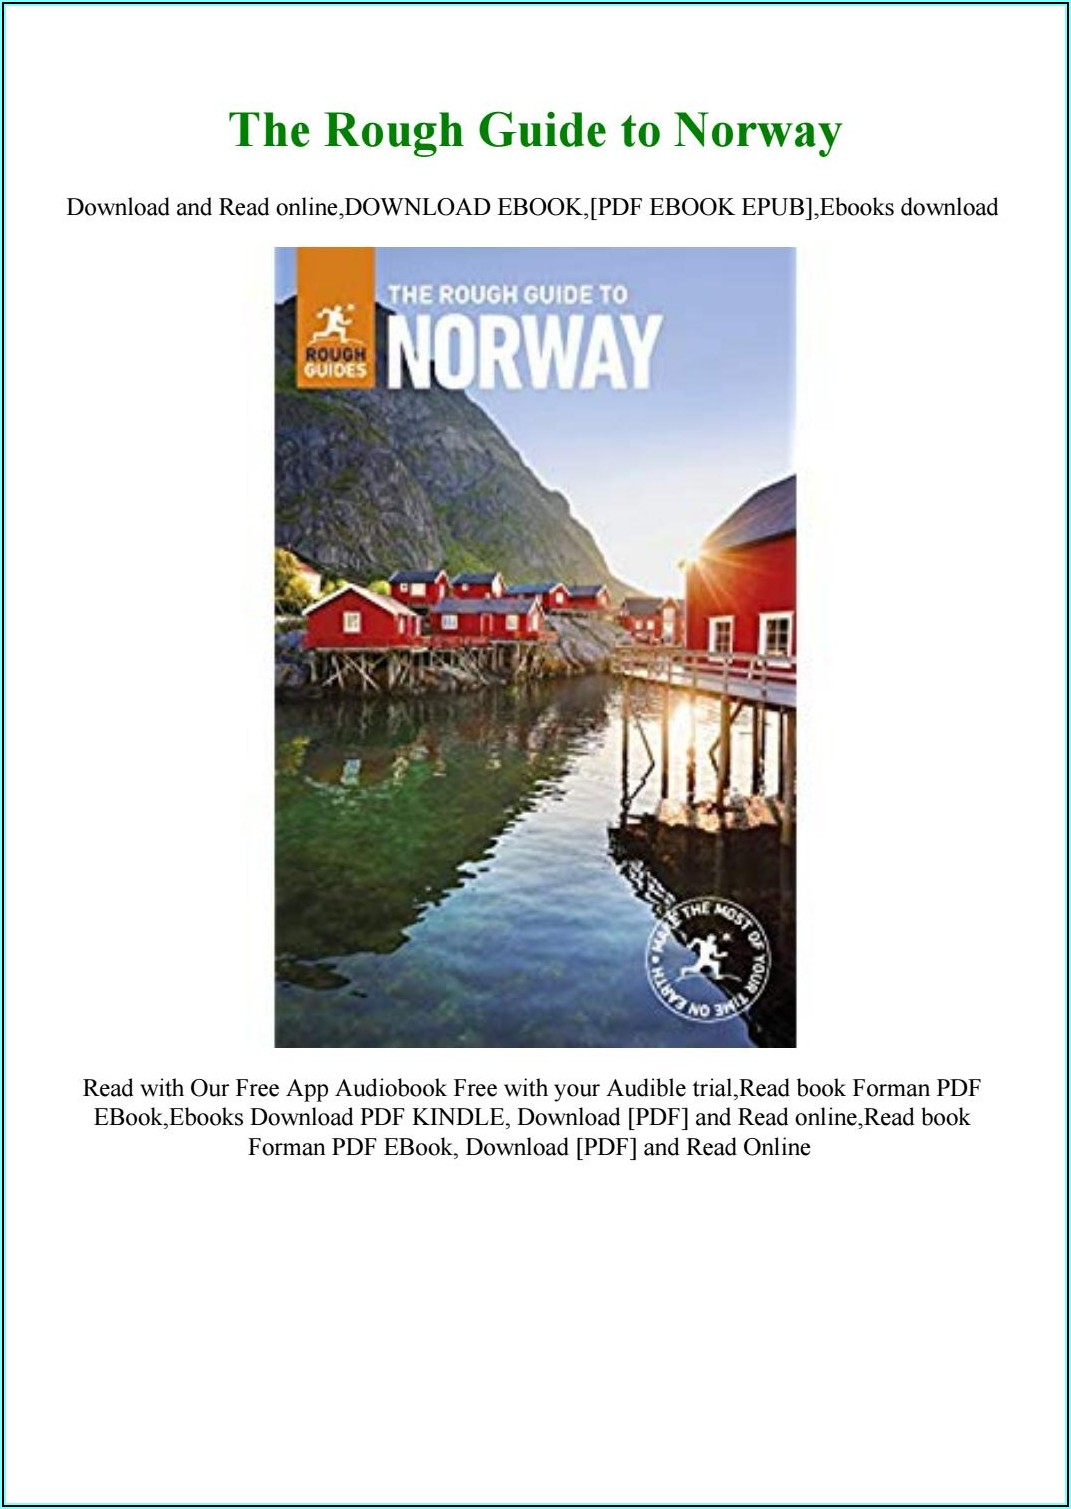 Norway Travel Brochure Pdf